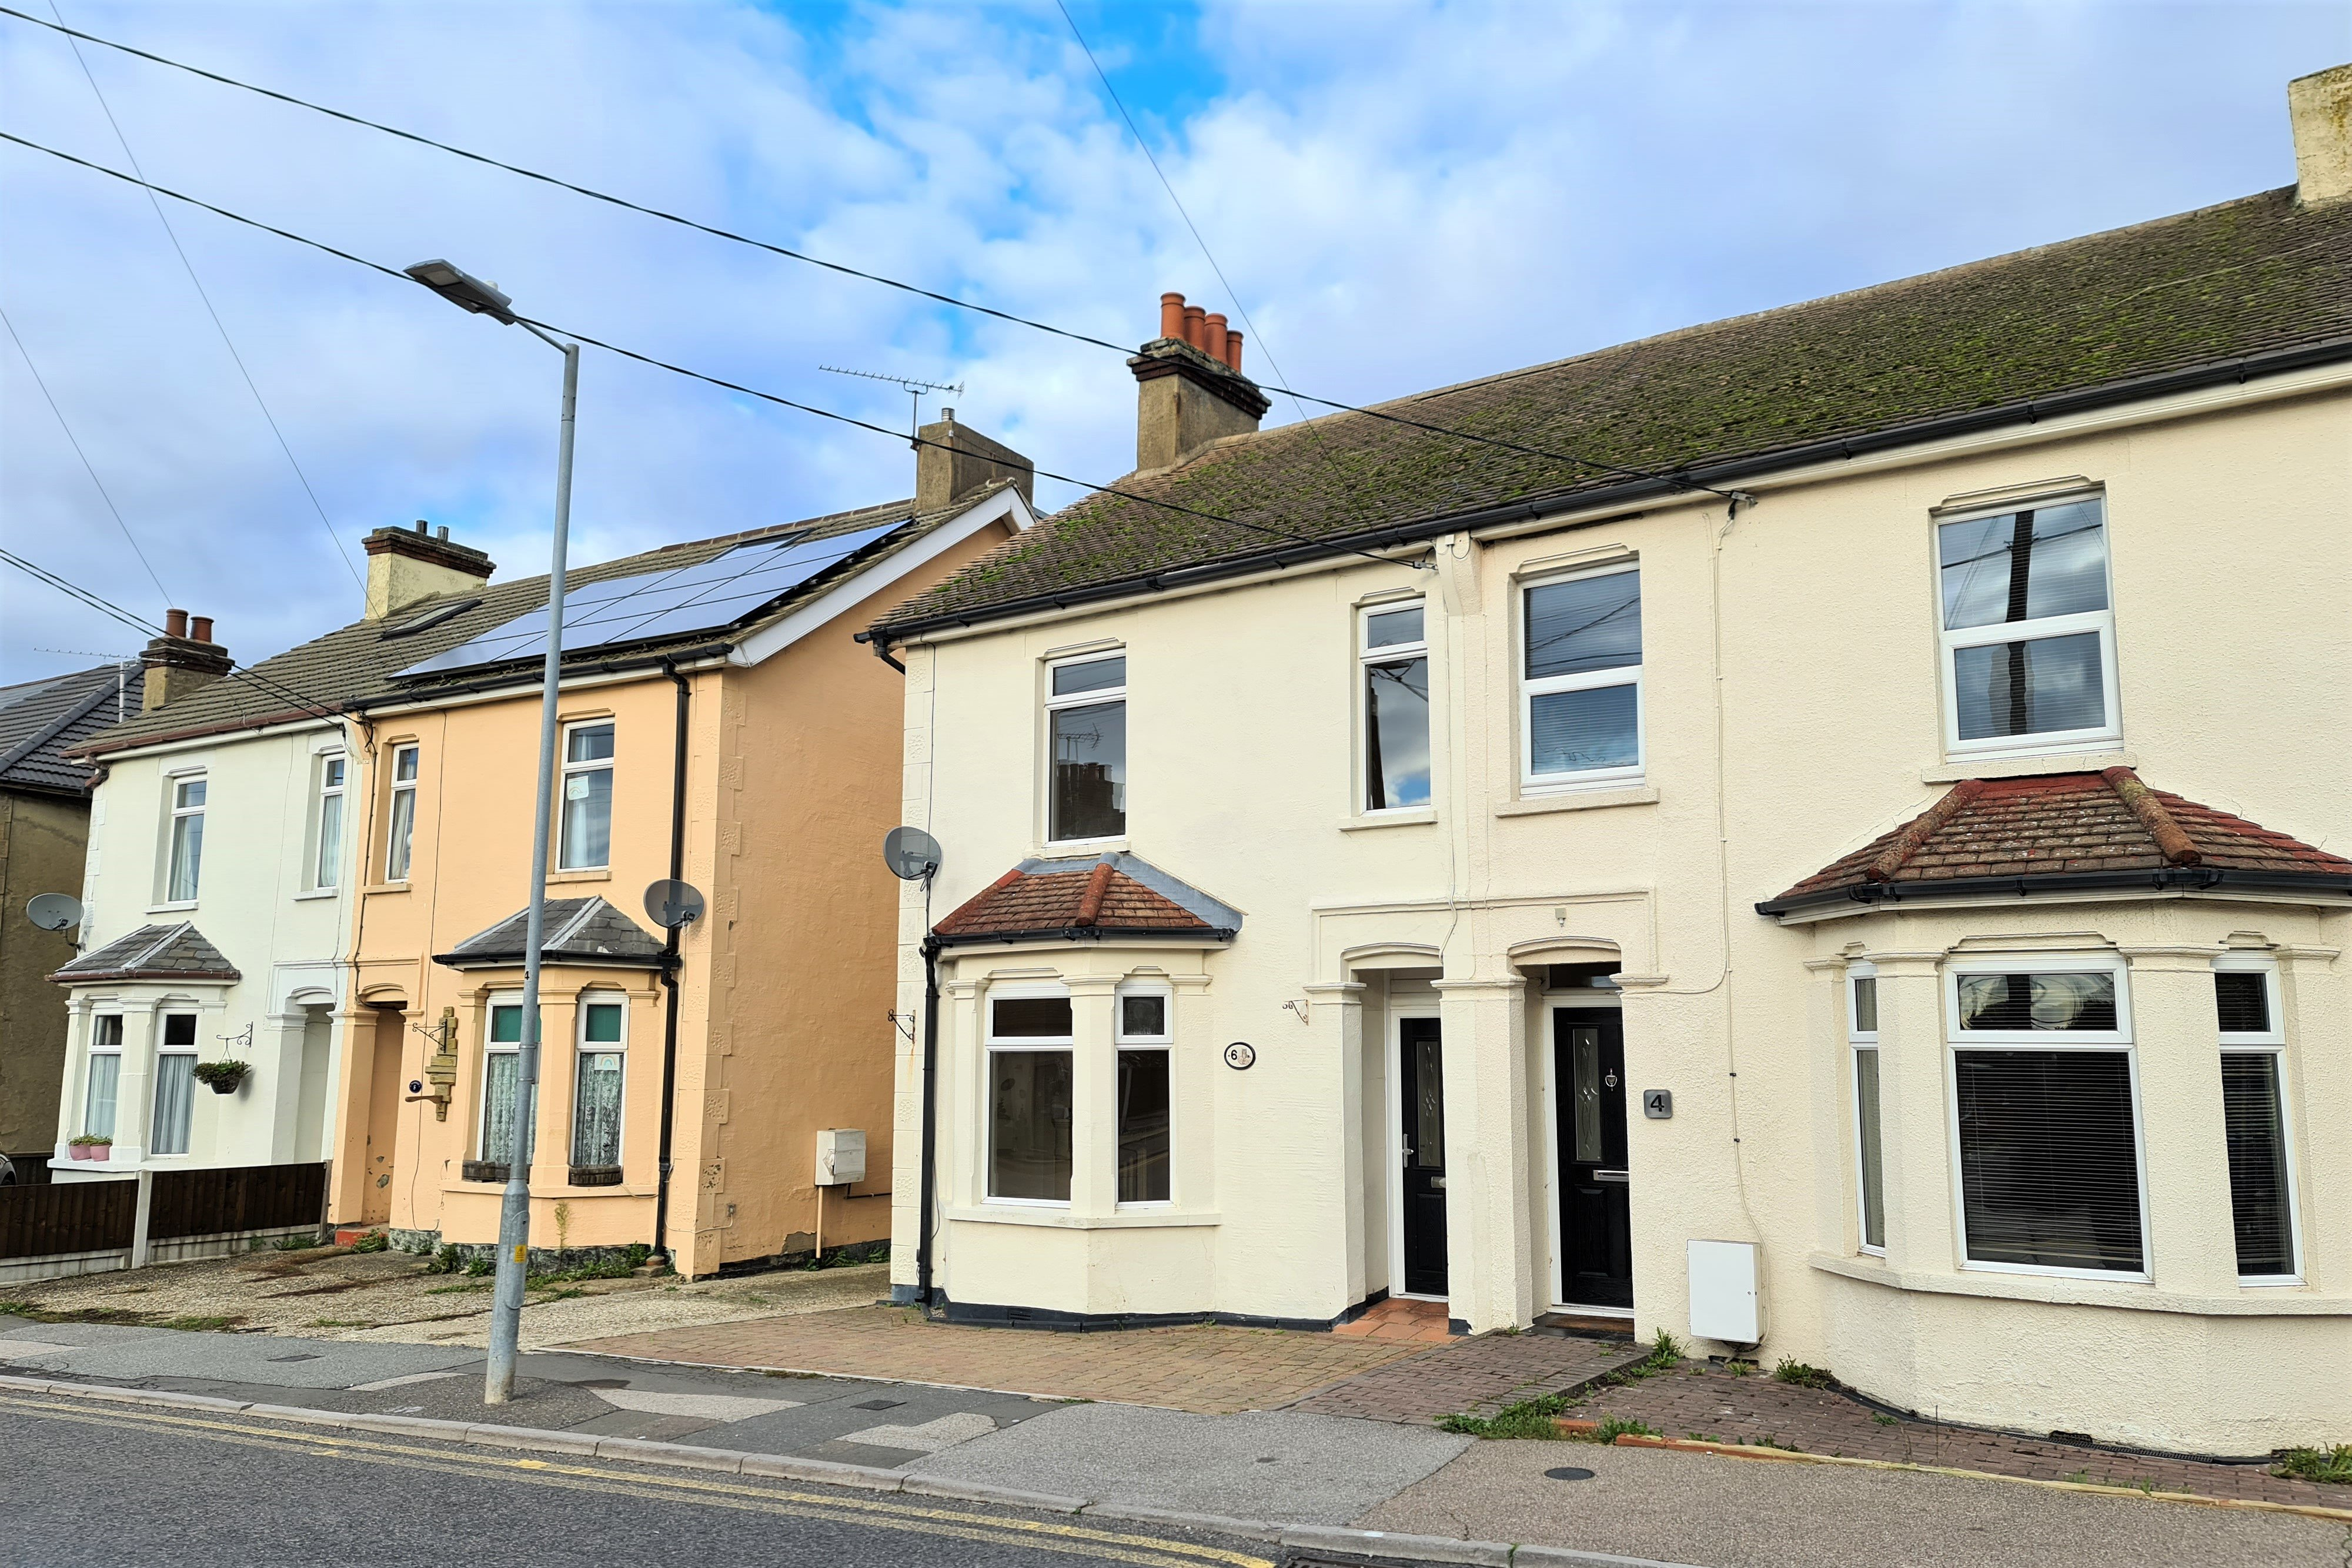 3 bed semi-detached house to rent in Love Lane, Rayleigh - Property Image 1